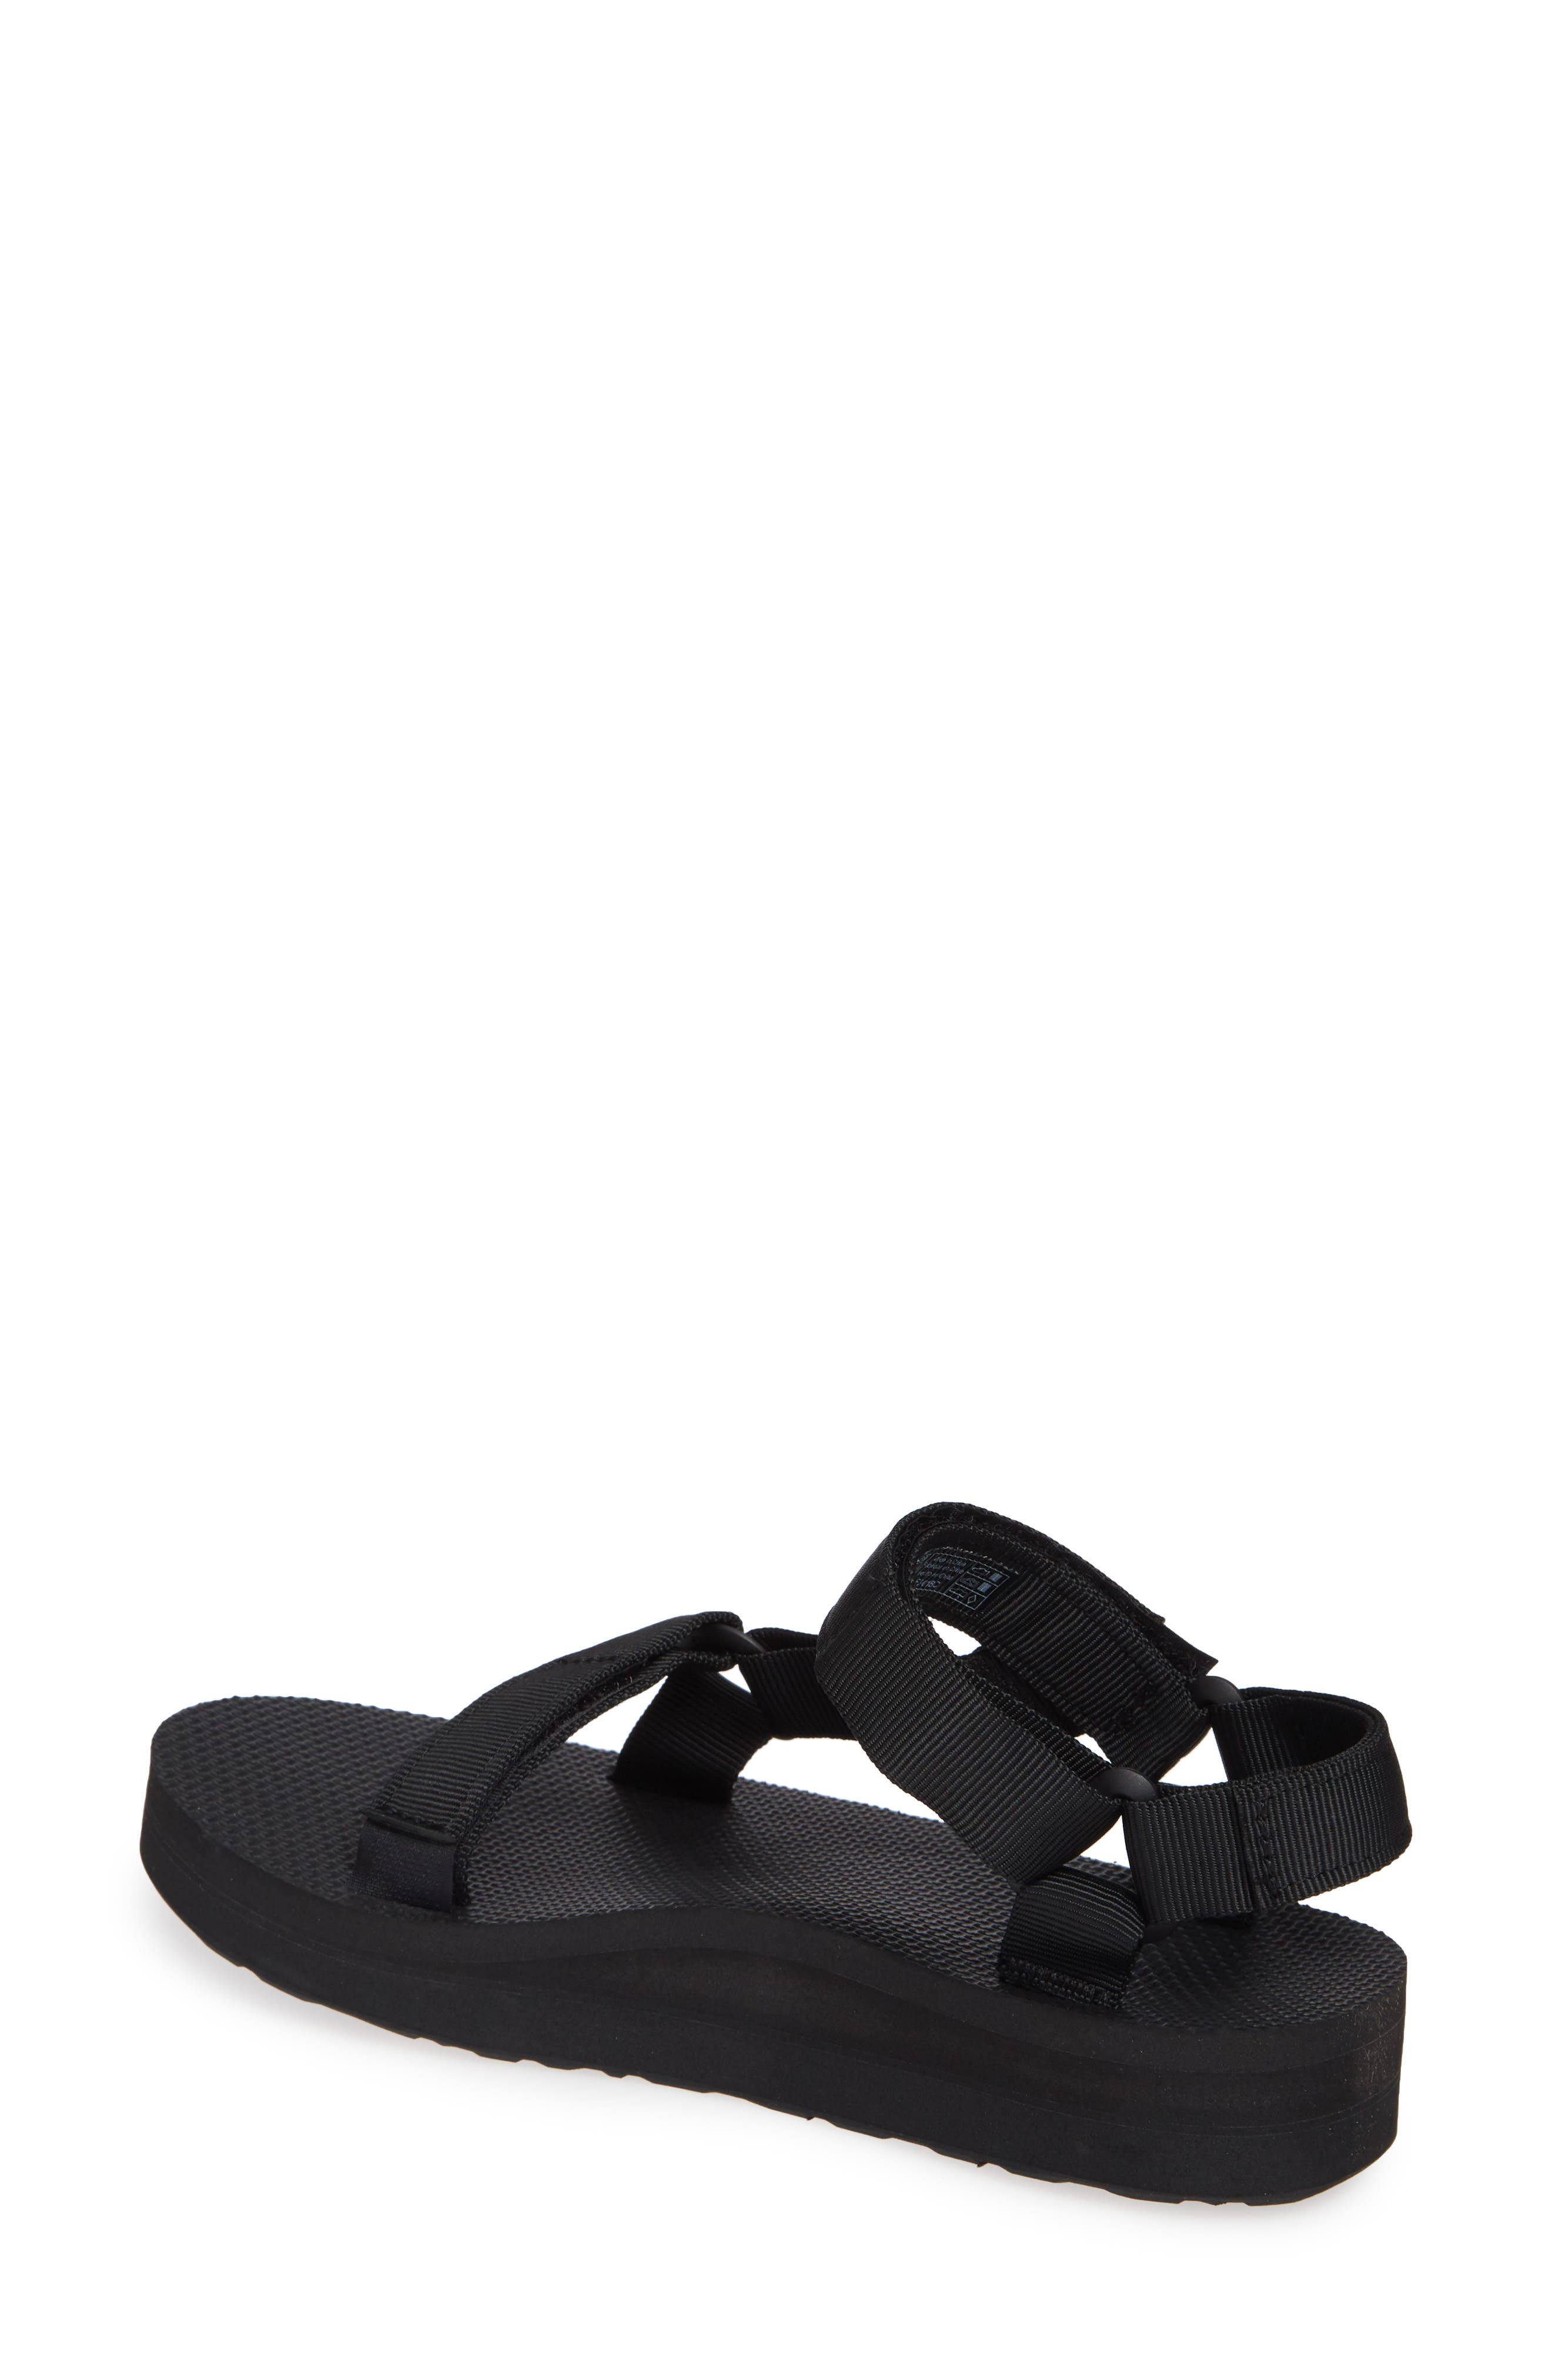 Midform Universal Geometric Sandal,                             Alternate thumbnail 2, color,                             BLACK FABRIC